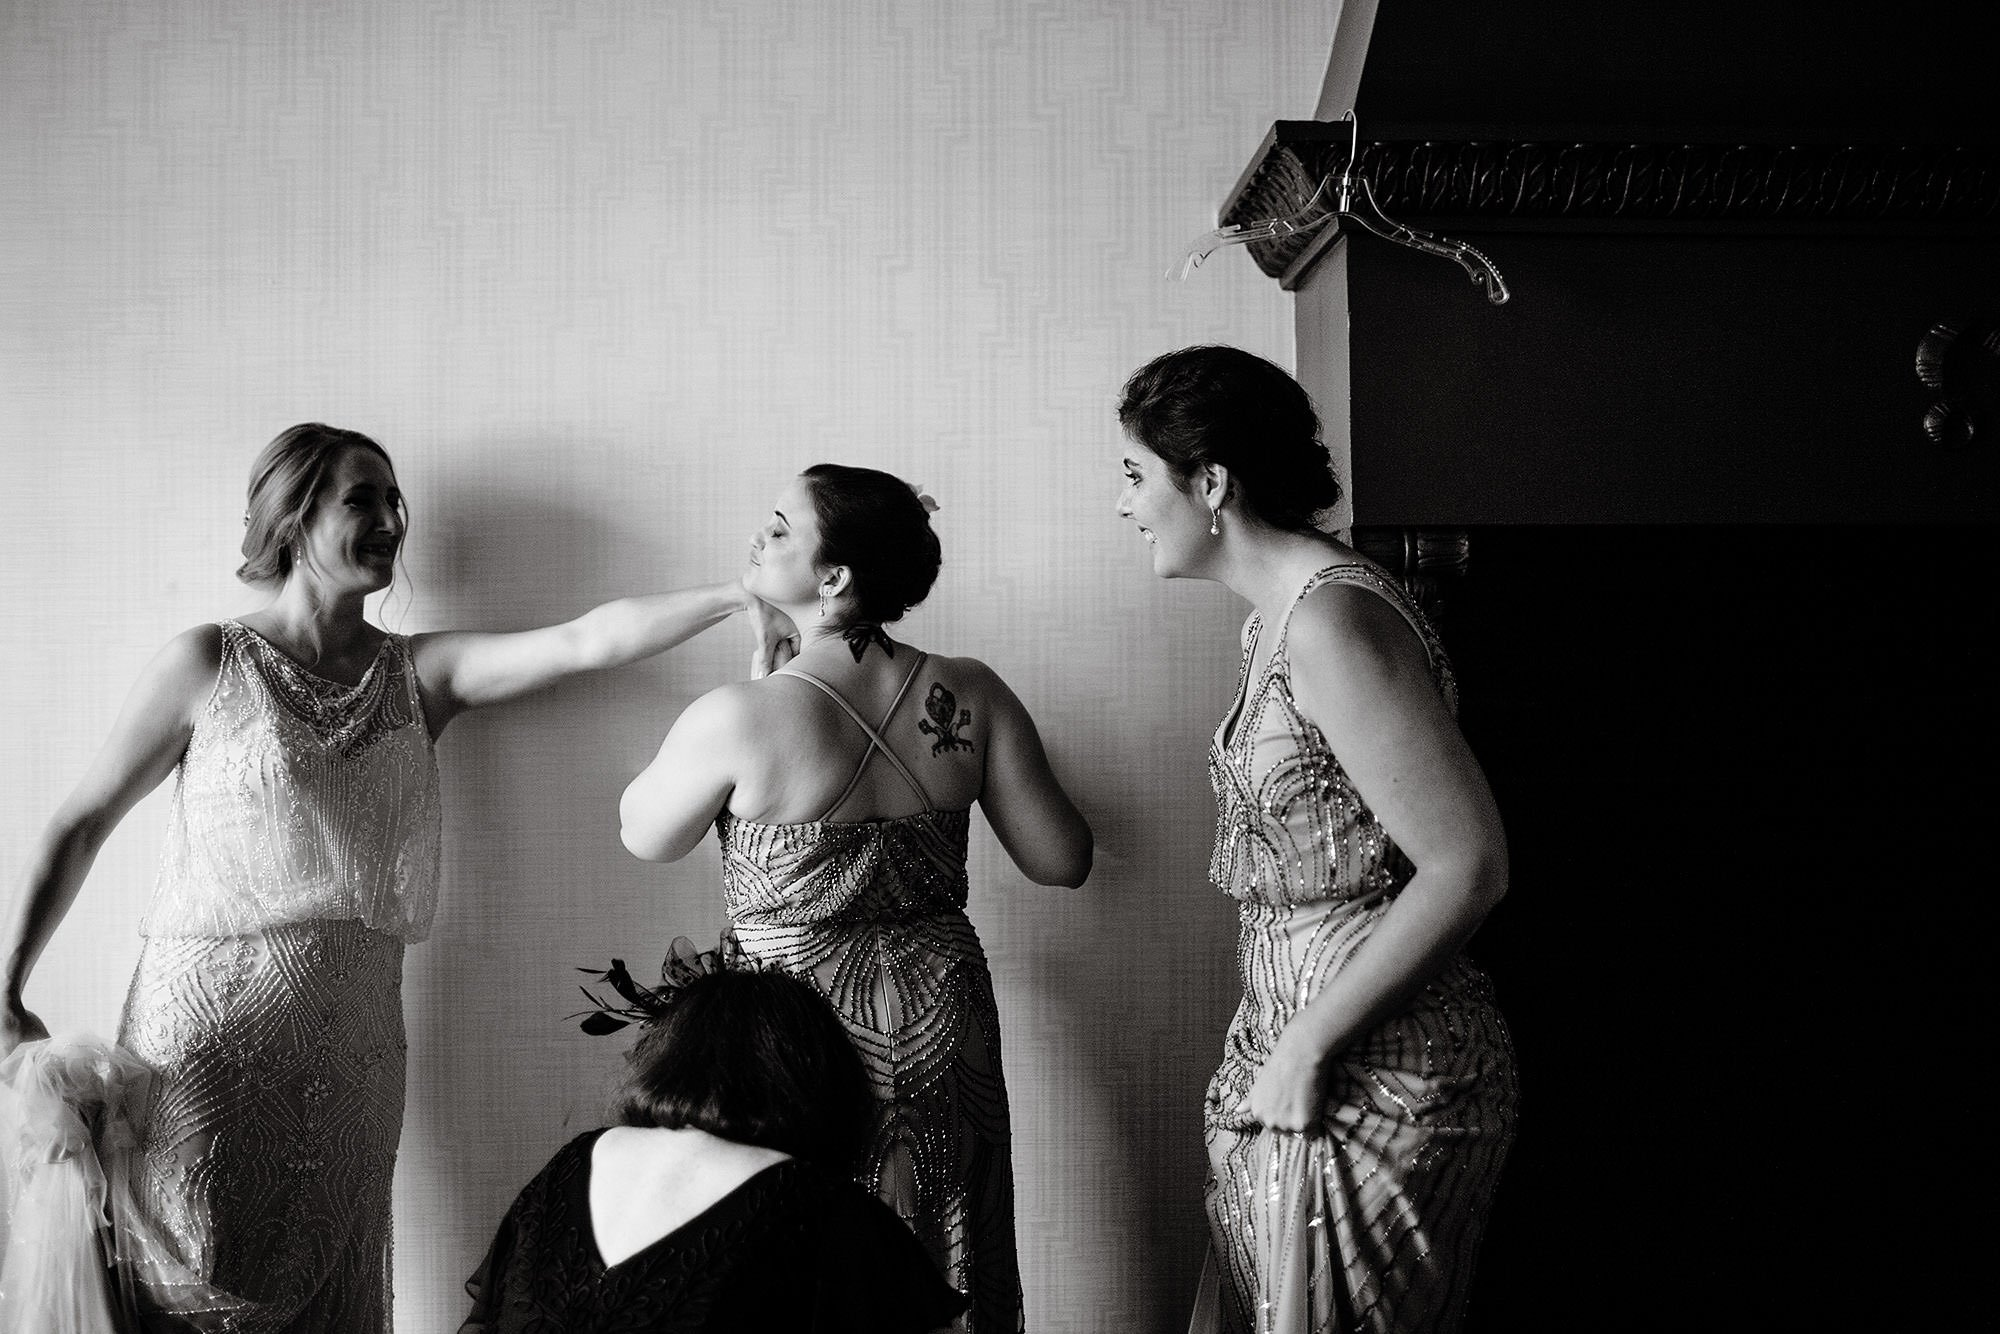 The bridesmaids get ready prior to the wedding ceremony.